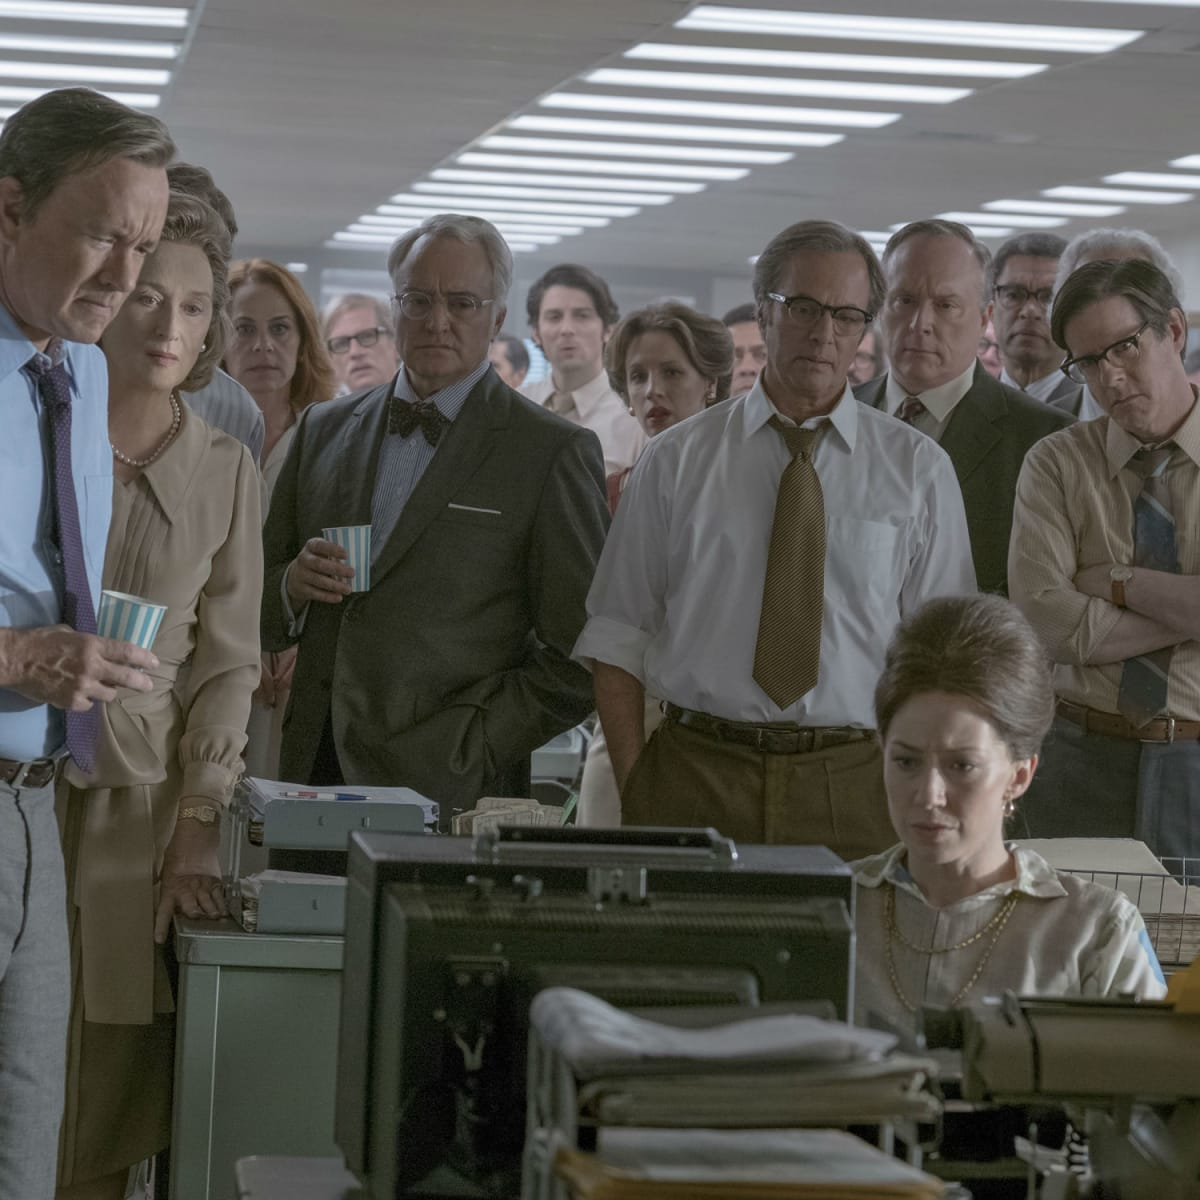 David Cross, Tracy Letts, Tom Hanks, Meryl Streep, Bradley Whitford, Philip Casnoff, Brent Langdon, and Carrie Coon in The Post